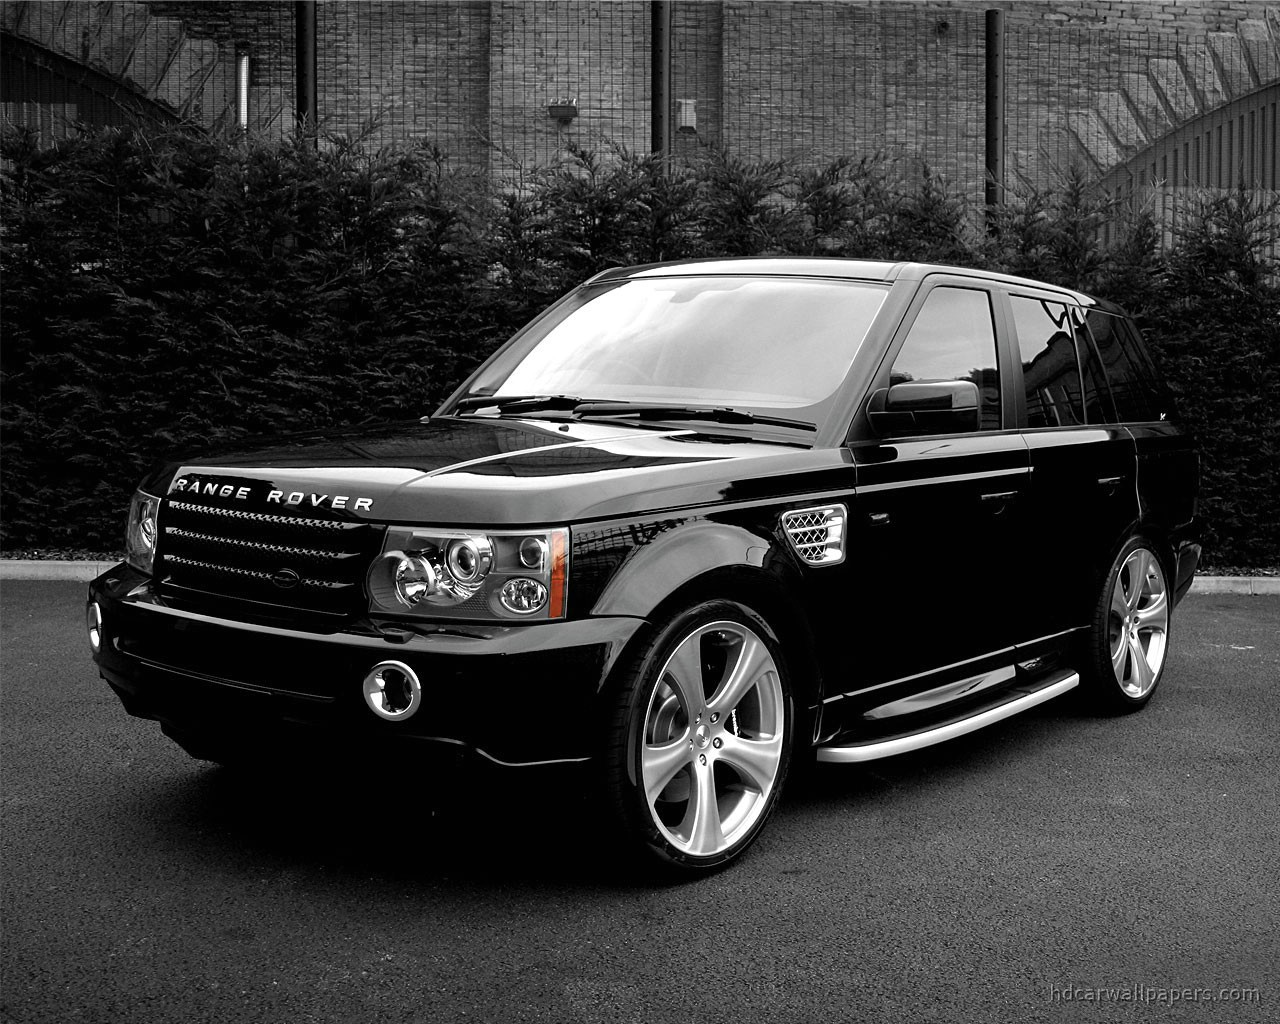 HD Wallpapers Black Sexy L Rover